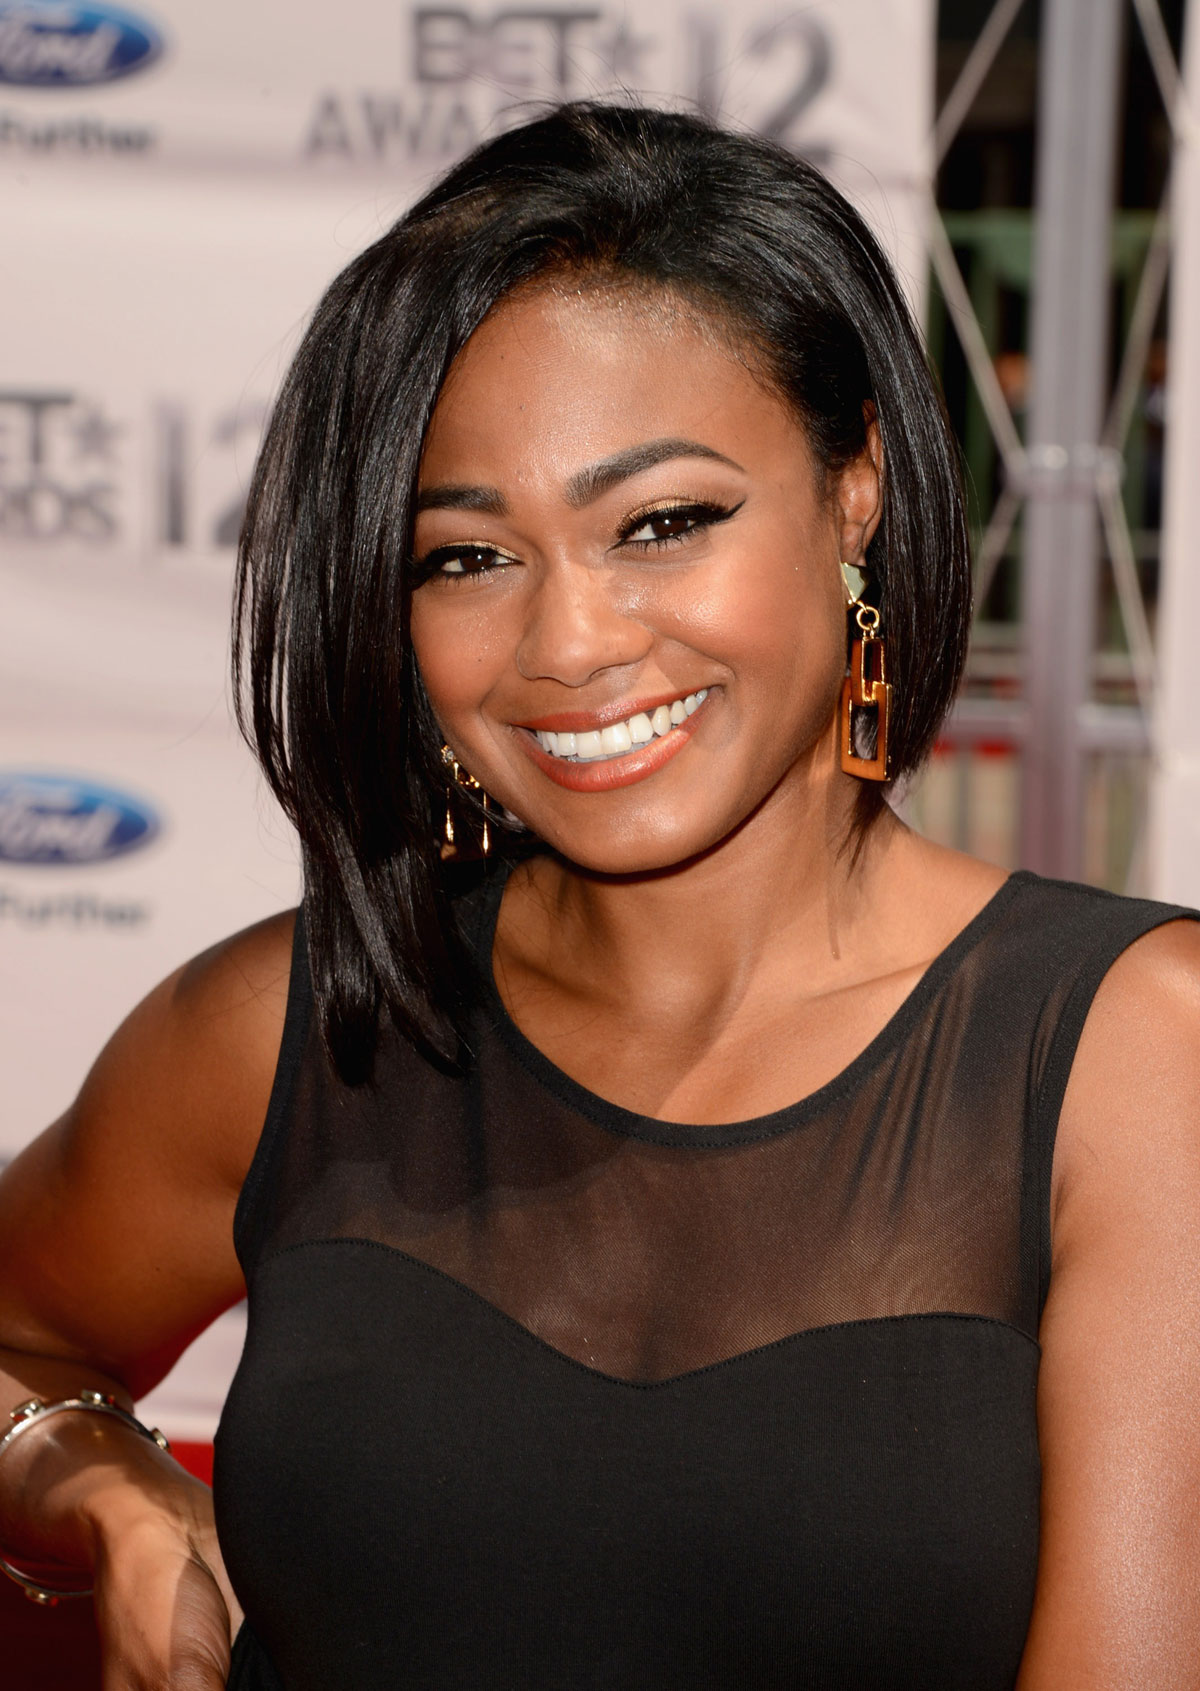 tatyana ali and draketatyana ali wiki, tatyana ali husband, tatyana ali mp3, tatyana ali eric andre, tatyana ali, tatyana ali net worth, tatyana ali daydreamin, tatyana ali and jonathan brandis, tatyana ali songs, tatyana ali daydreamin lyrics, tatyana ali parents, tatyana ali instagram, tatyana ali and drake, tatyana ali fiance, tatyana ali on jonathan brandis death, tatyana ali hot, tatyana ali boyfriend, tatyana ali pregnant, tatyana ali biography